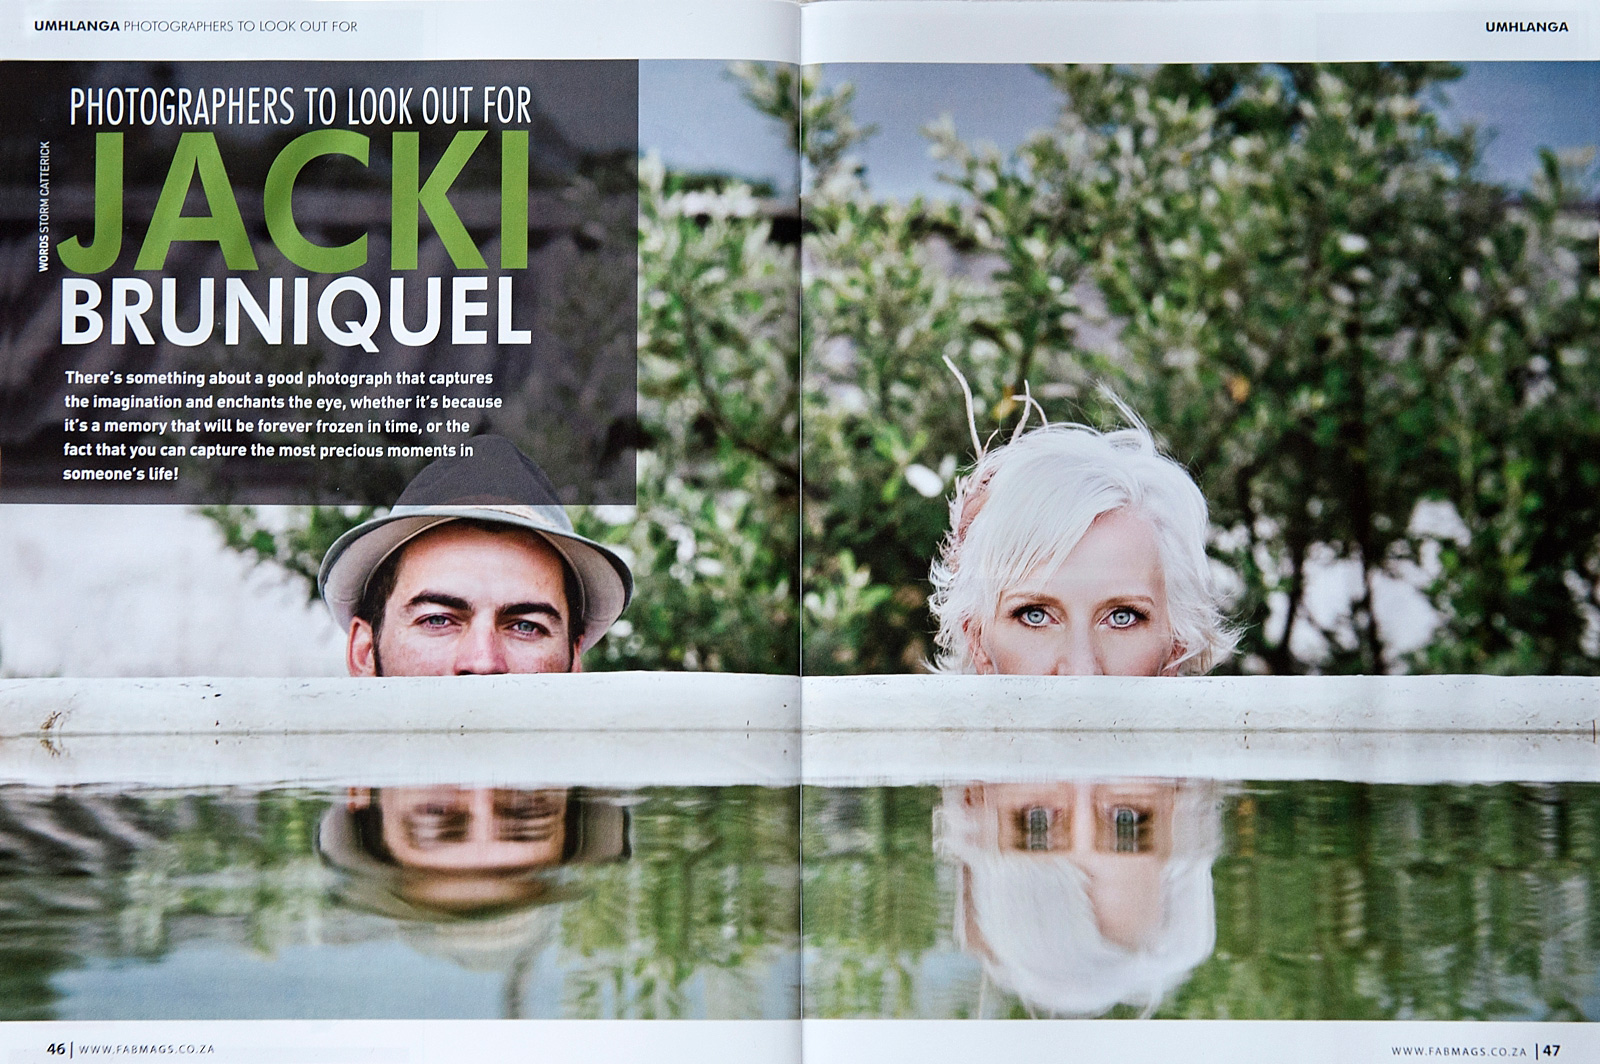 Jacki-Bruniquel-The-Umhlanga-Magazine-1